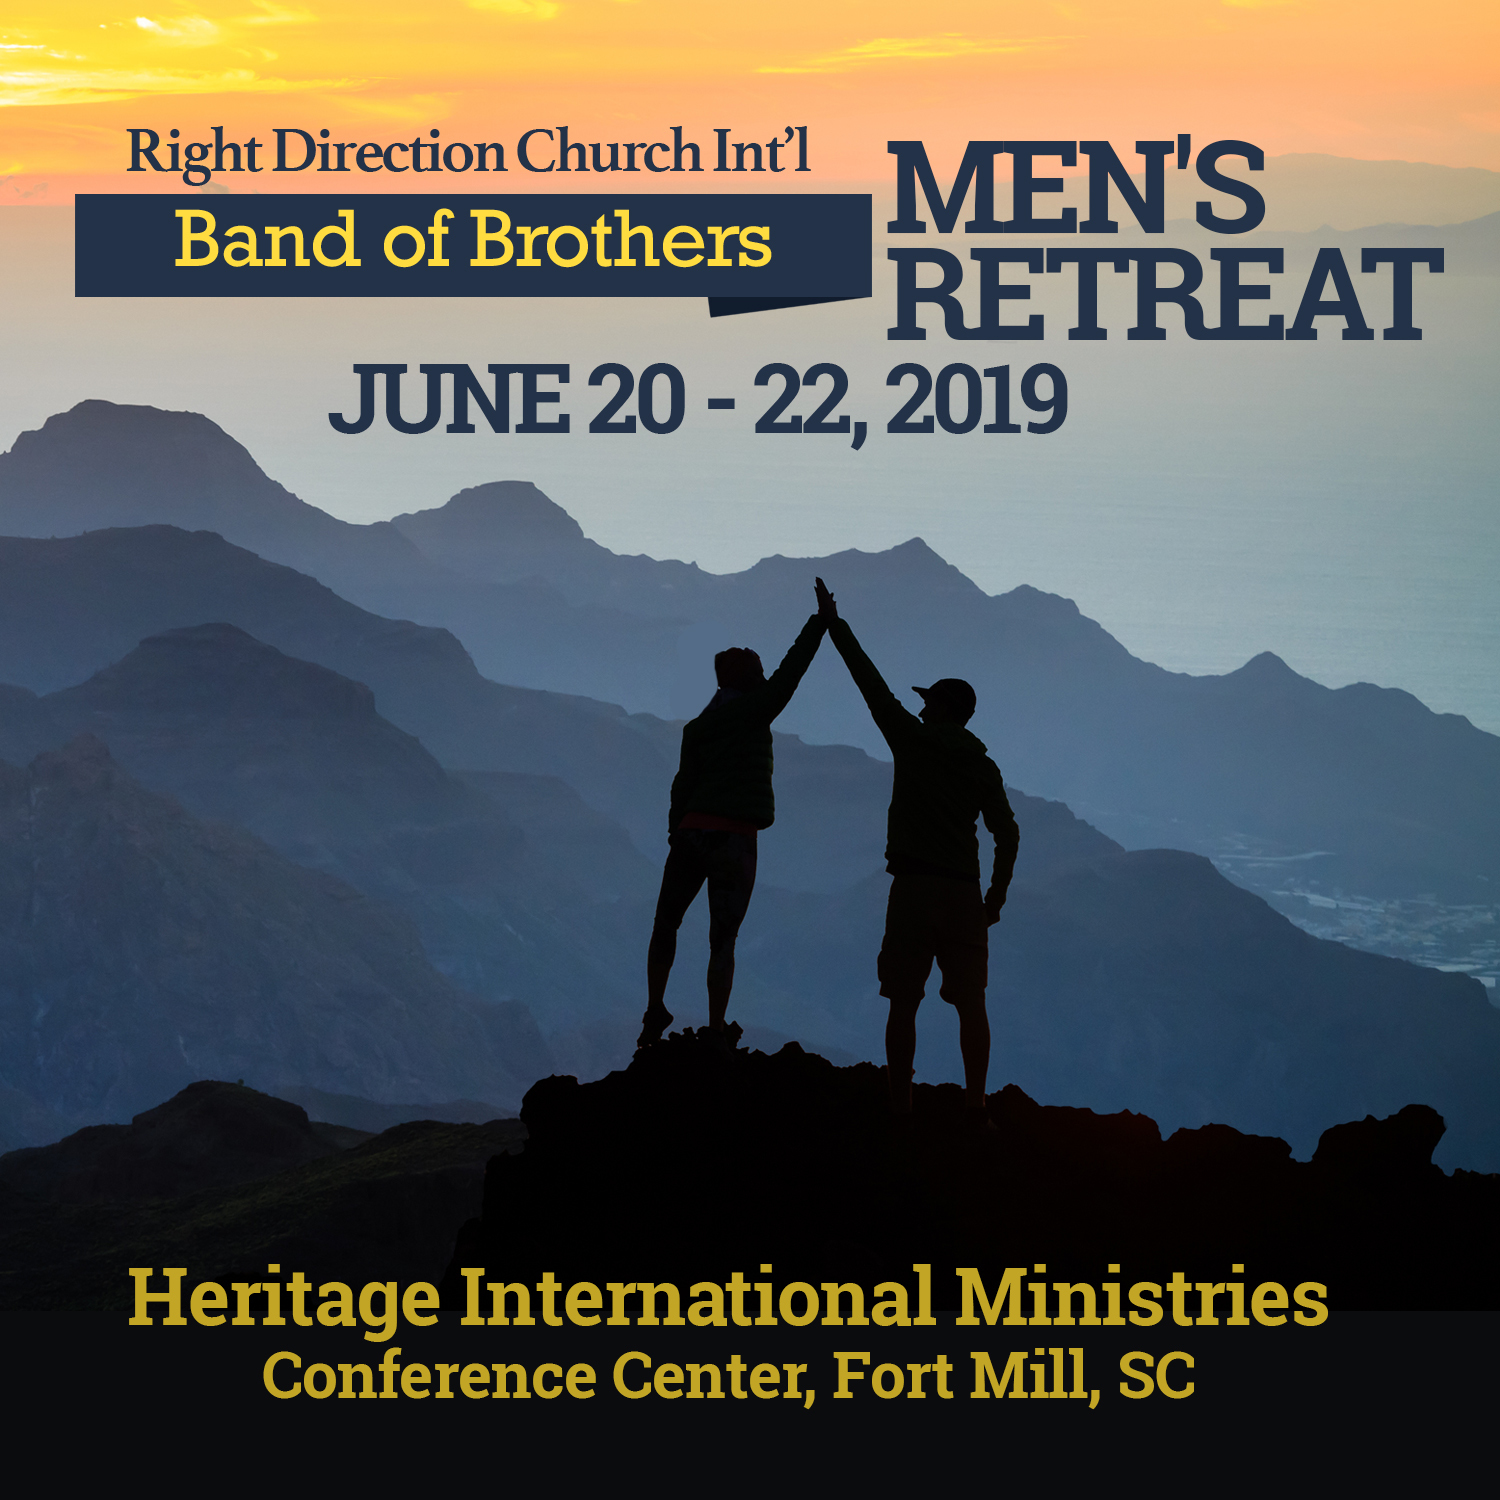 Band of Brothers Men's Retreat - Package A RDCI0040